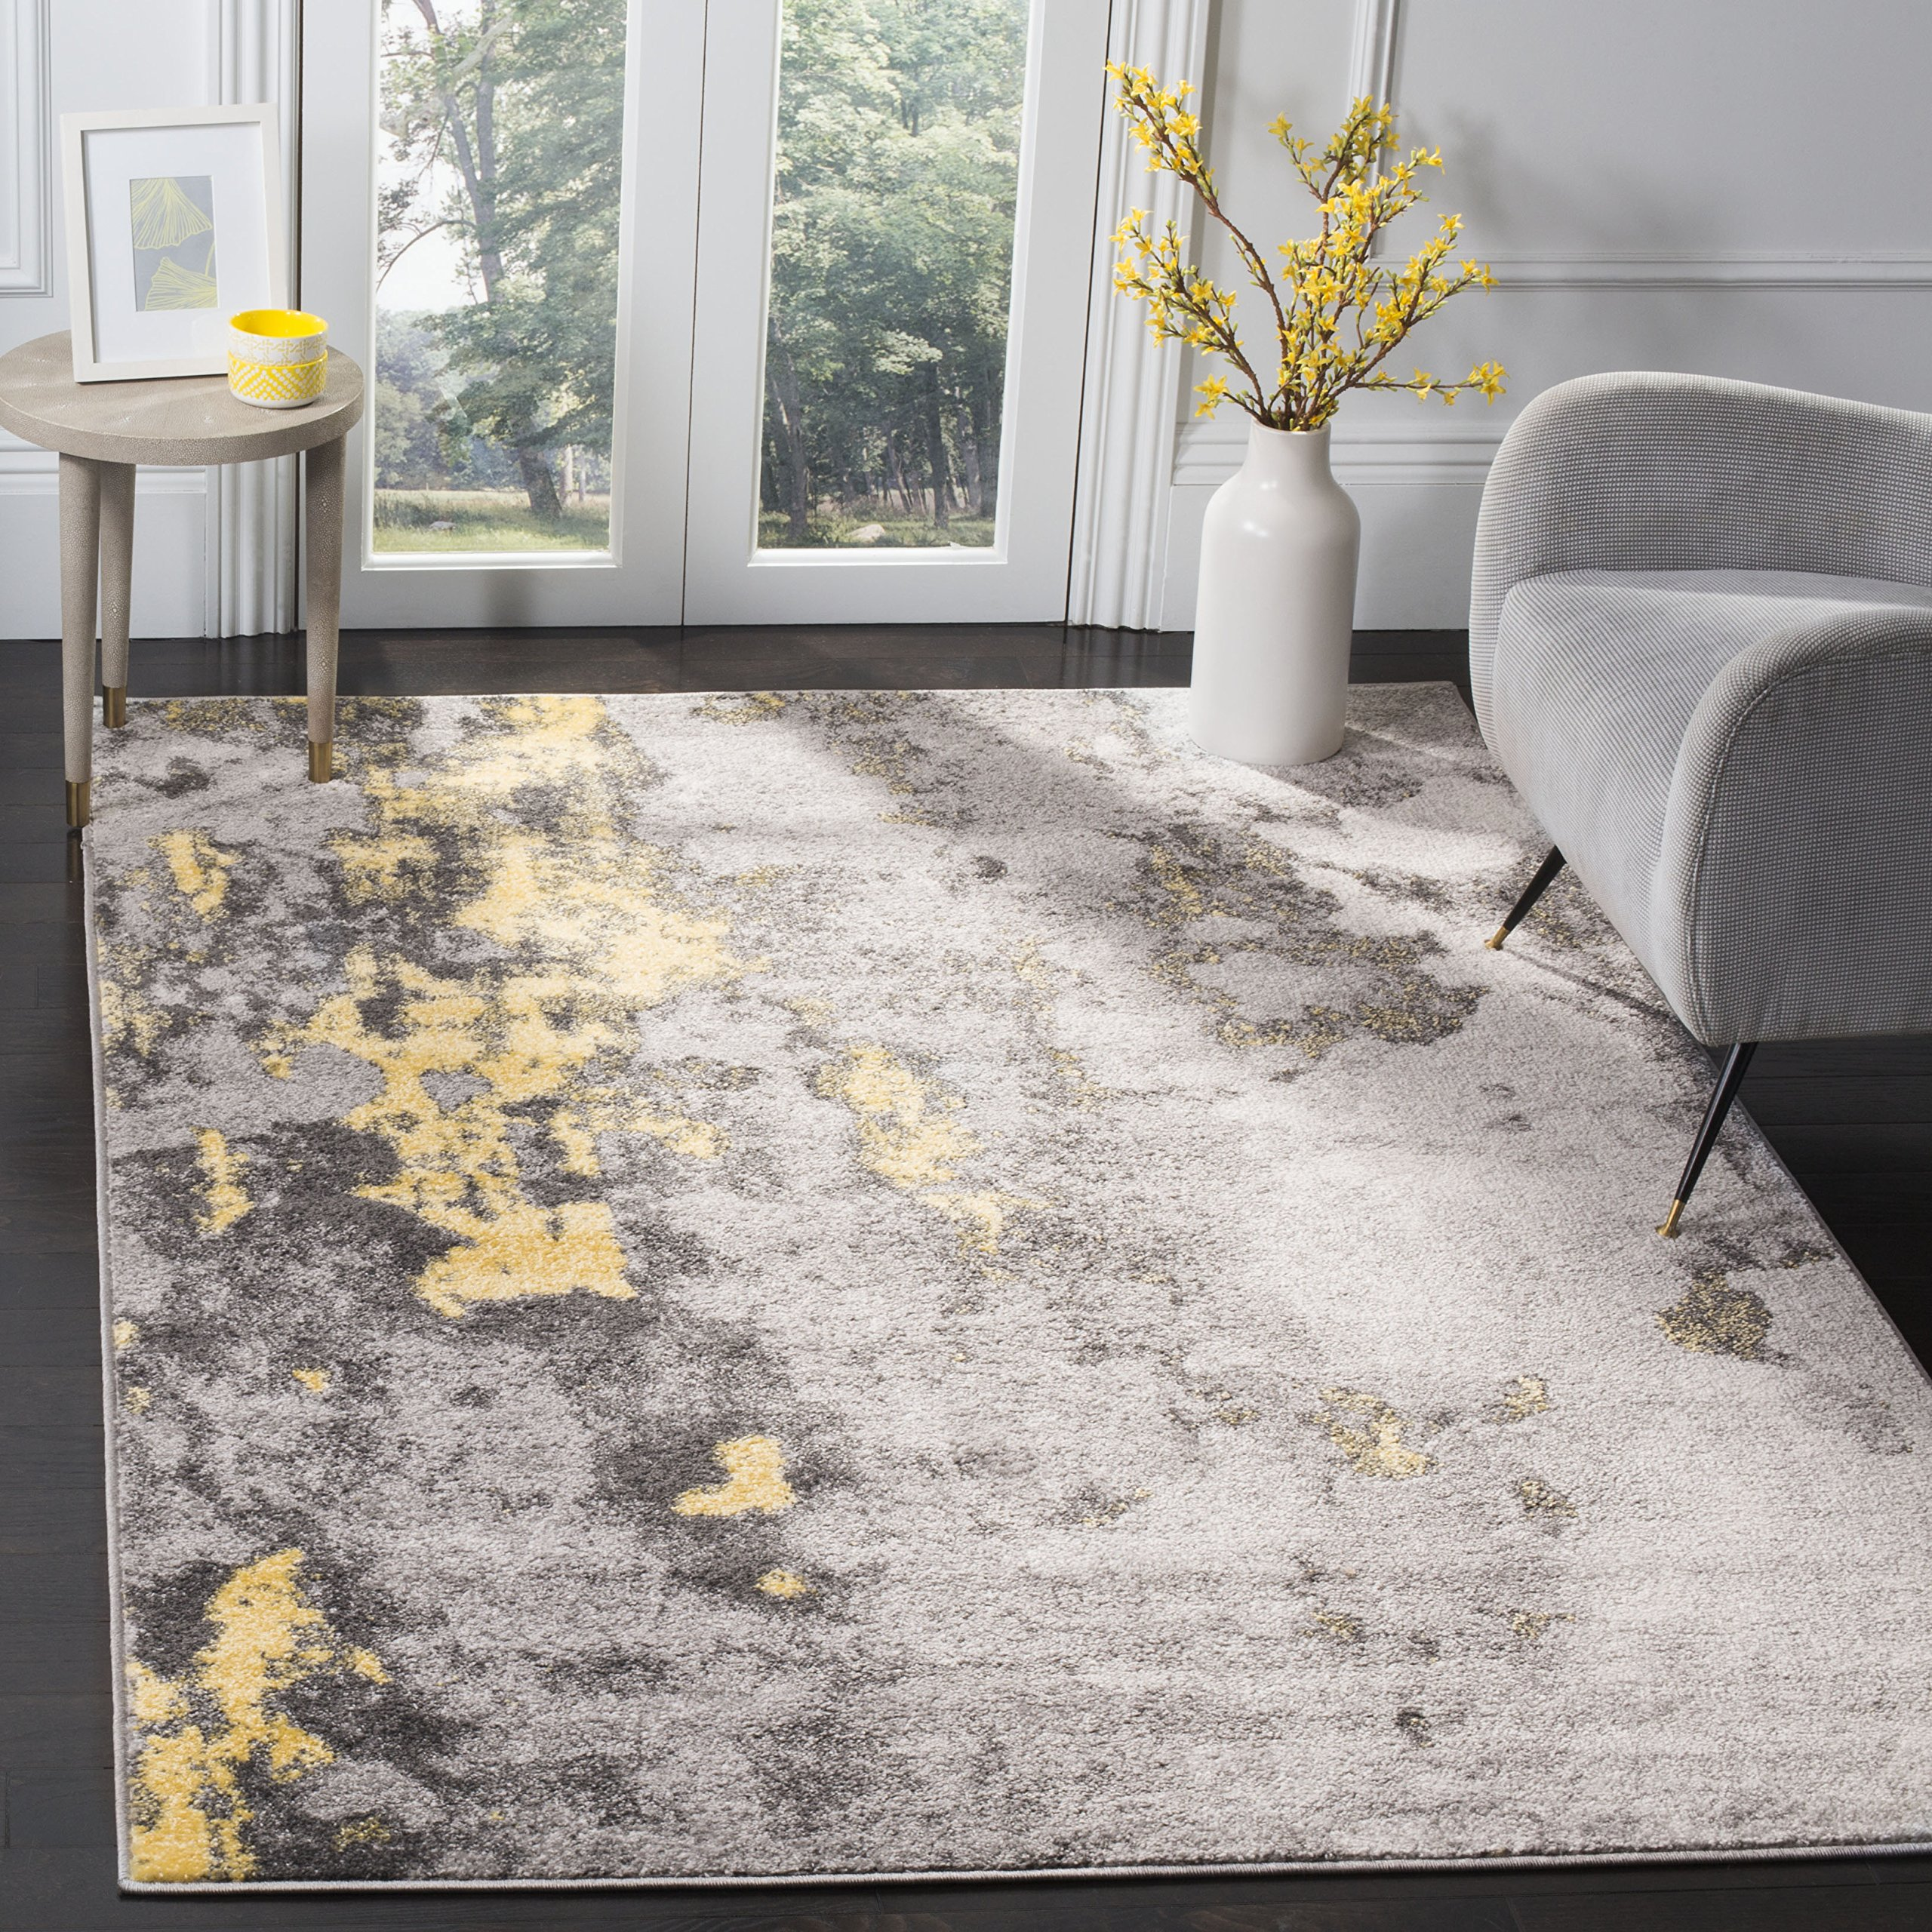 Safavieh Adirondack Collection ADR134H Grey and Yellow Modern Abstract Distressed Area Rug (5'1'' x 7'6'')